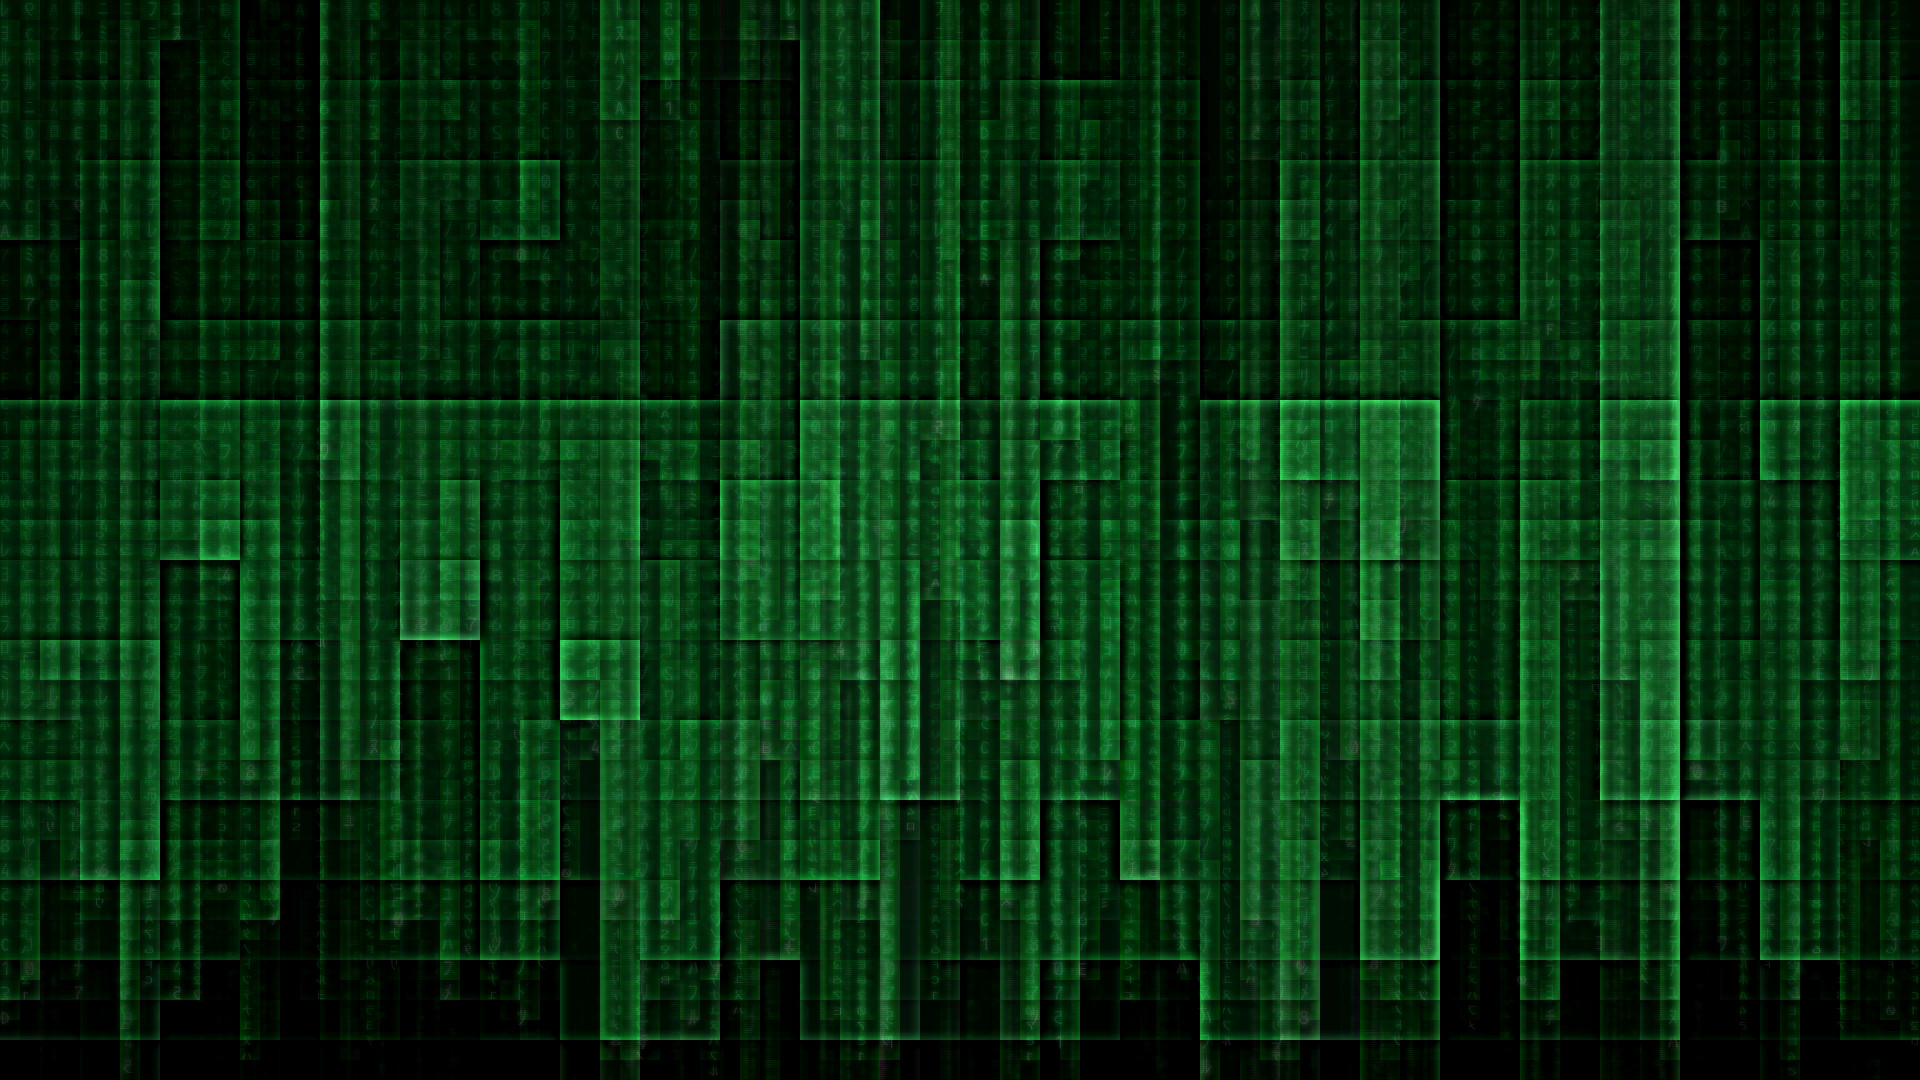 Matrix Wallpaper Matrix